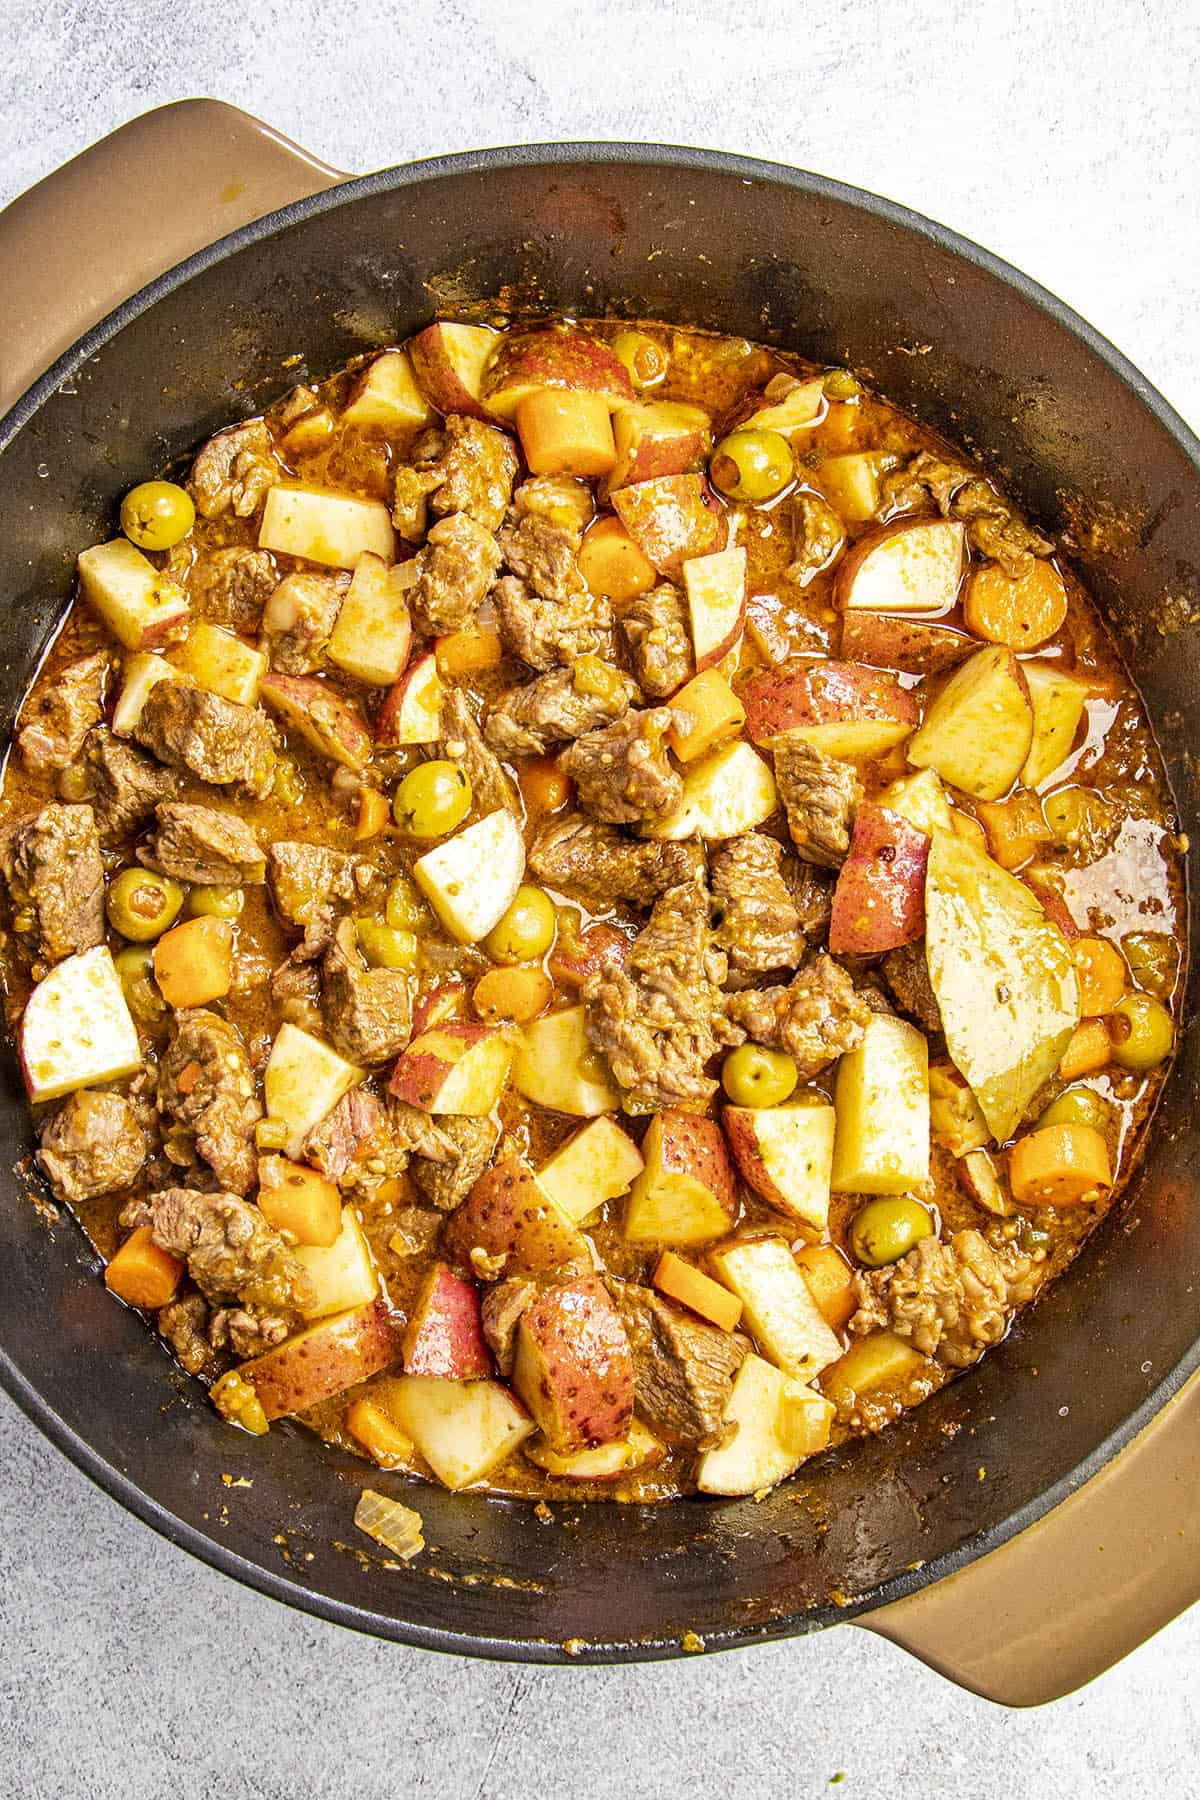 Cooking down the beef and vegetables in a pot to make carne guisada (beef stew)